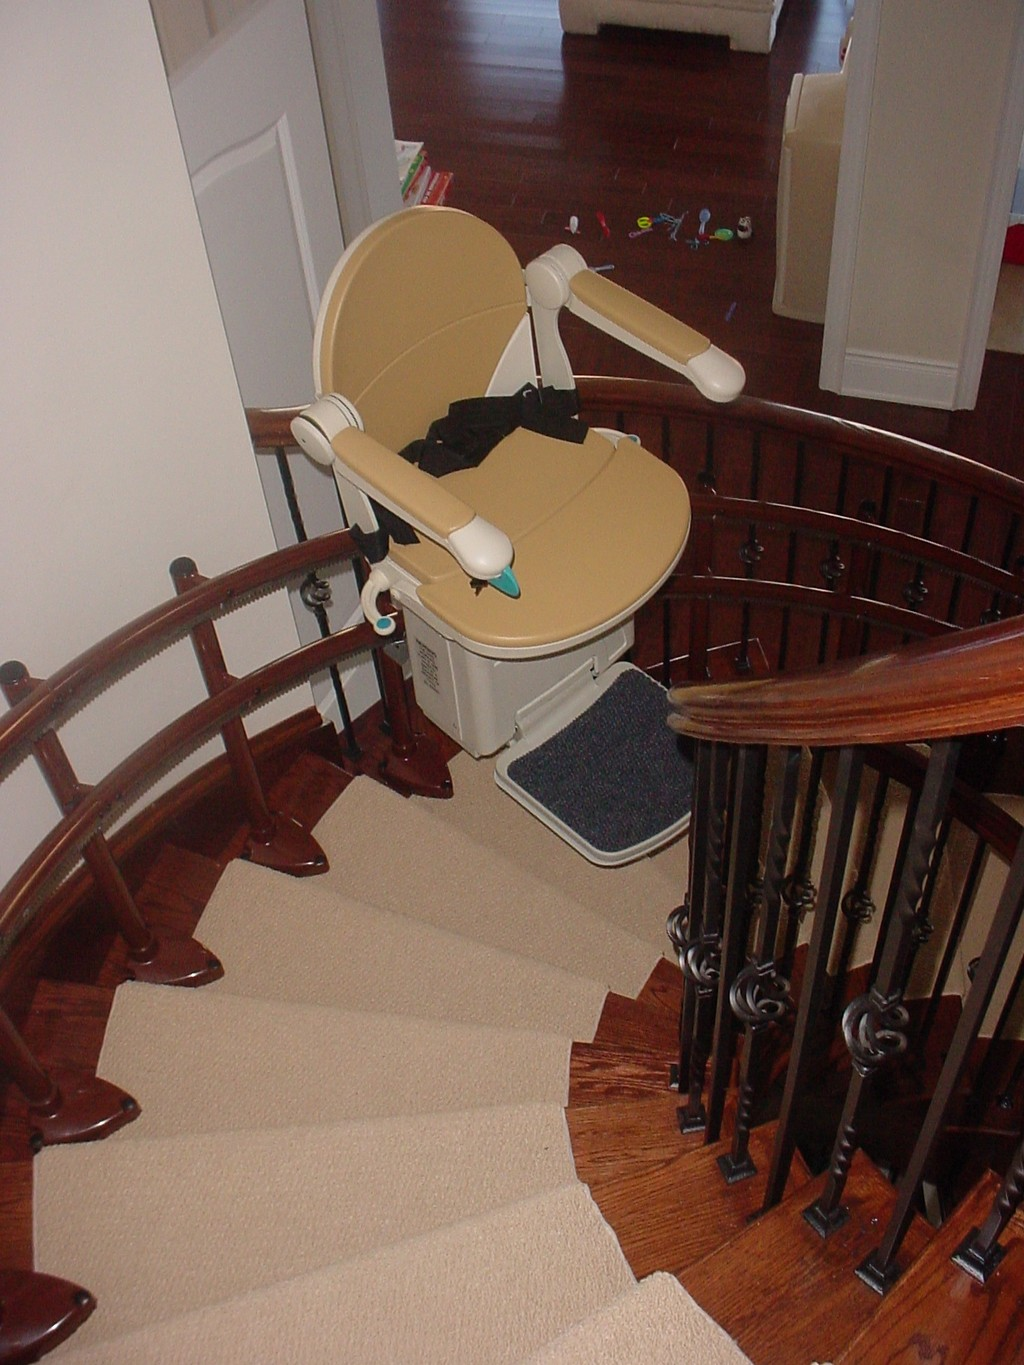 used stair lifts, stairlifts ft myers fl, elevators stair lifts, stairlift sales in southwest michigan